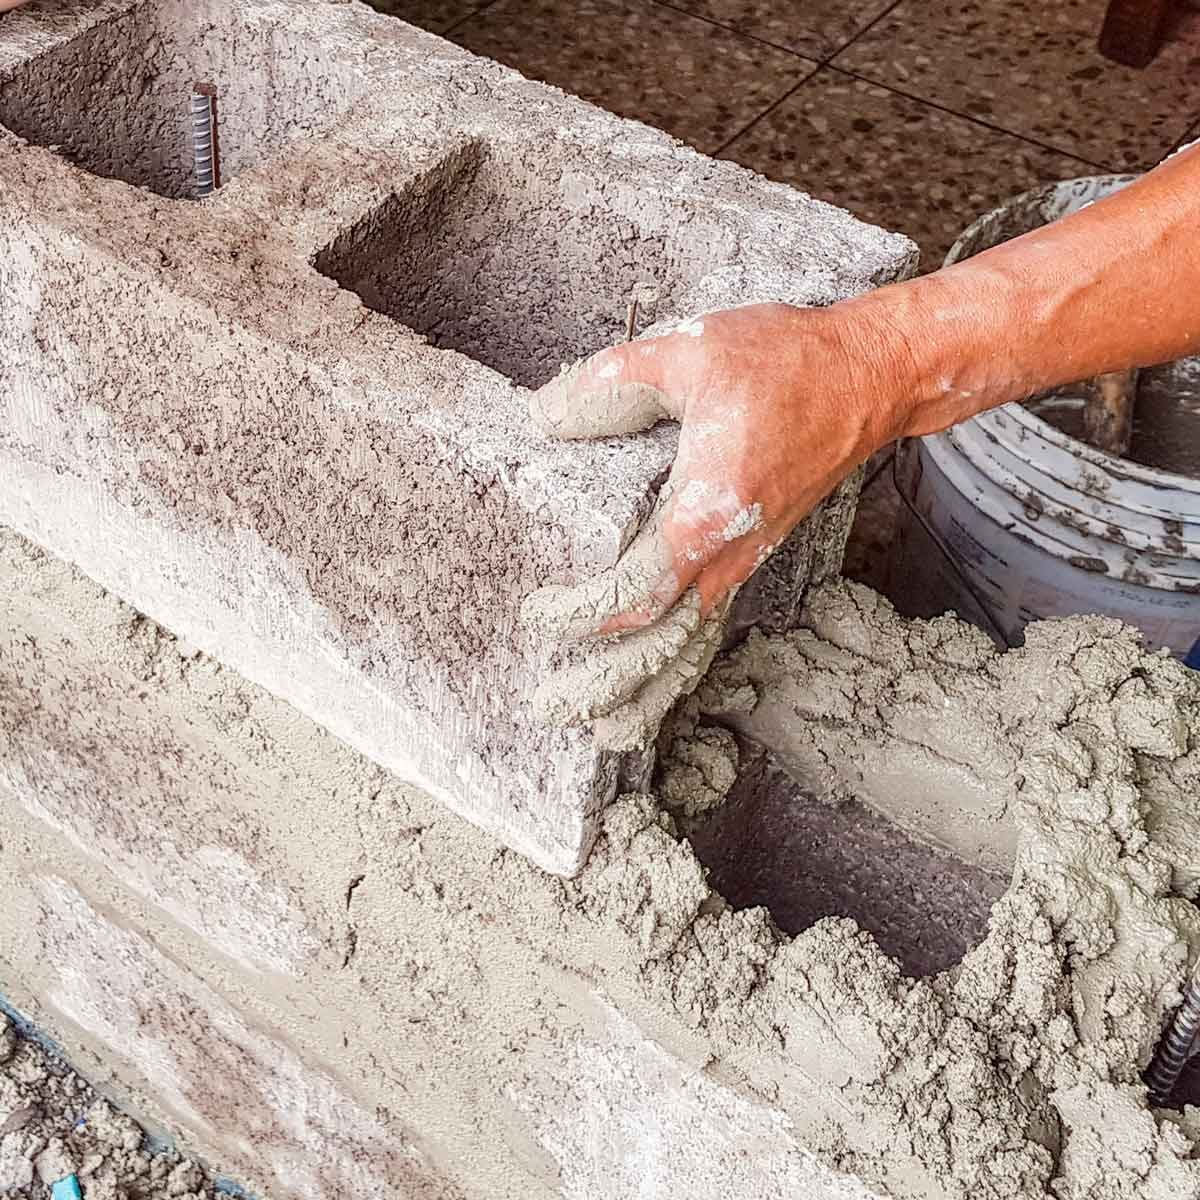 Working with cement with bare hands